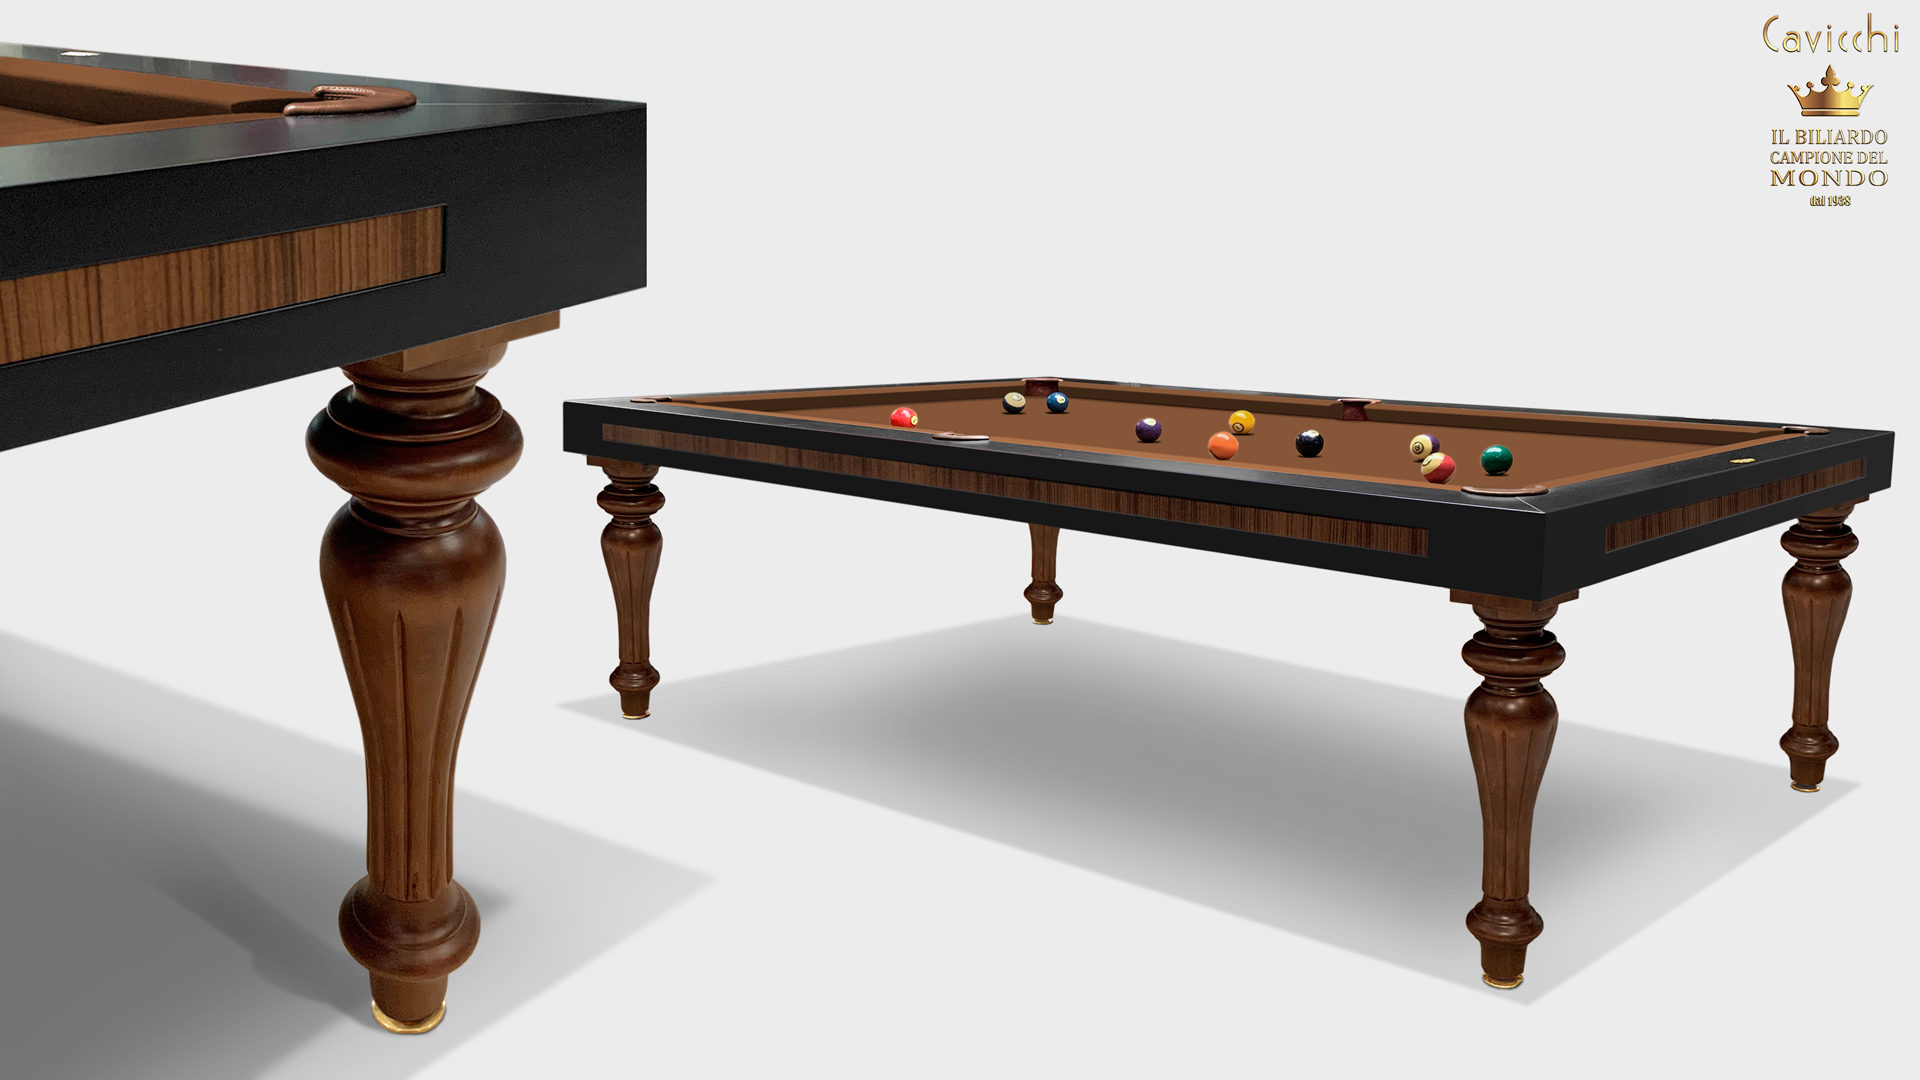 BILLIARD TABLE CAVICCHI LION - SHOWROOM SHOP 3